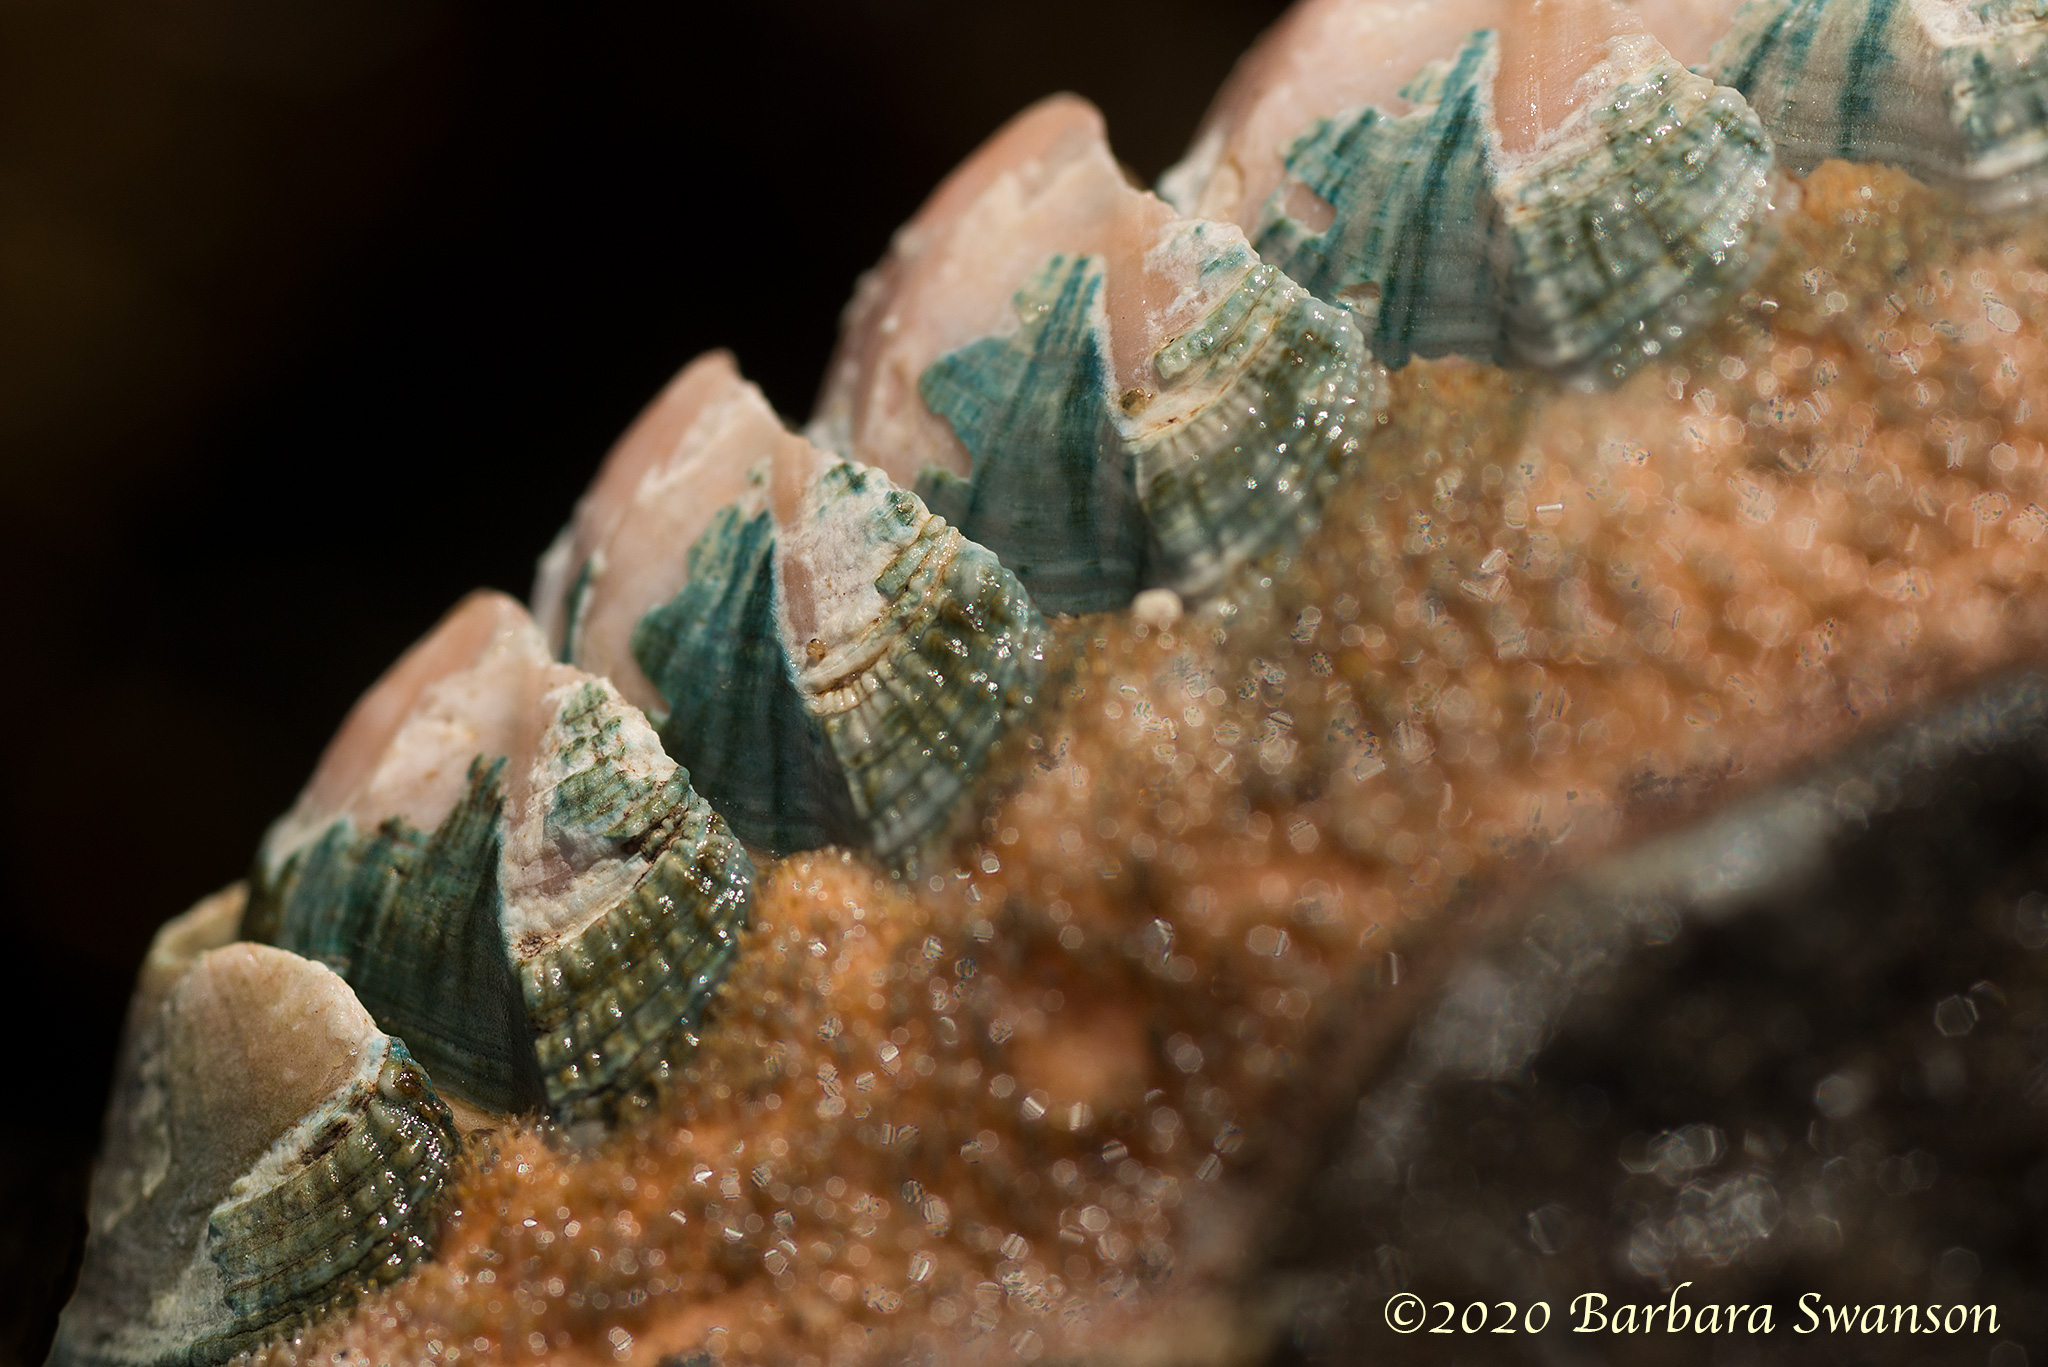 Conspicuous chiton